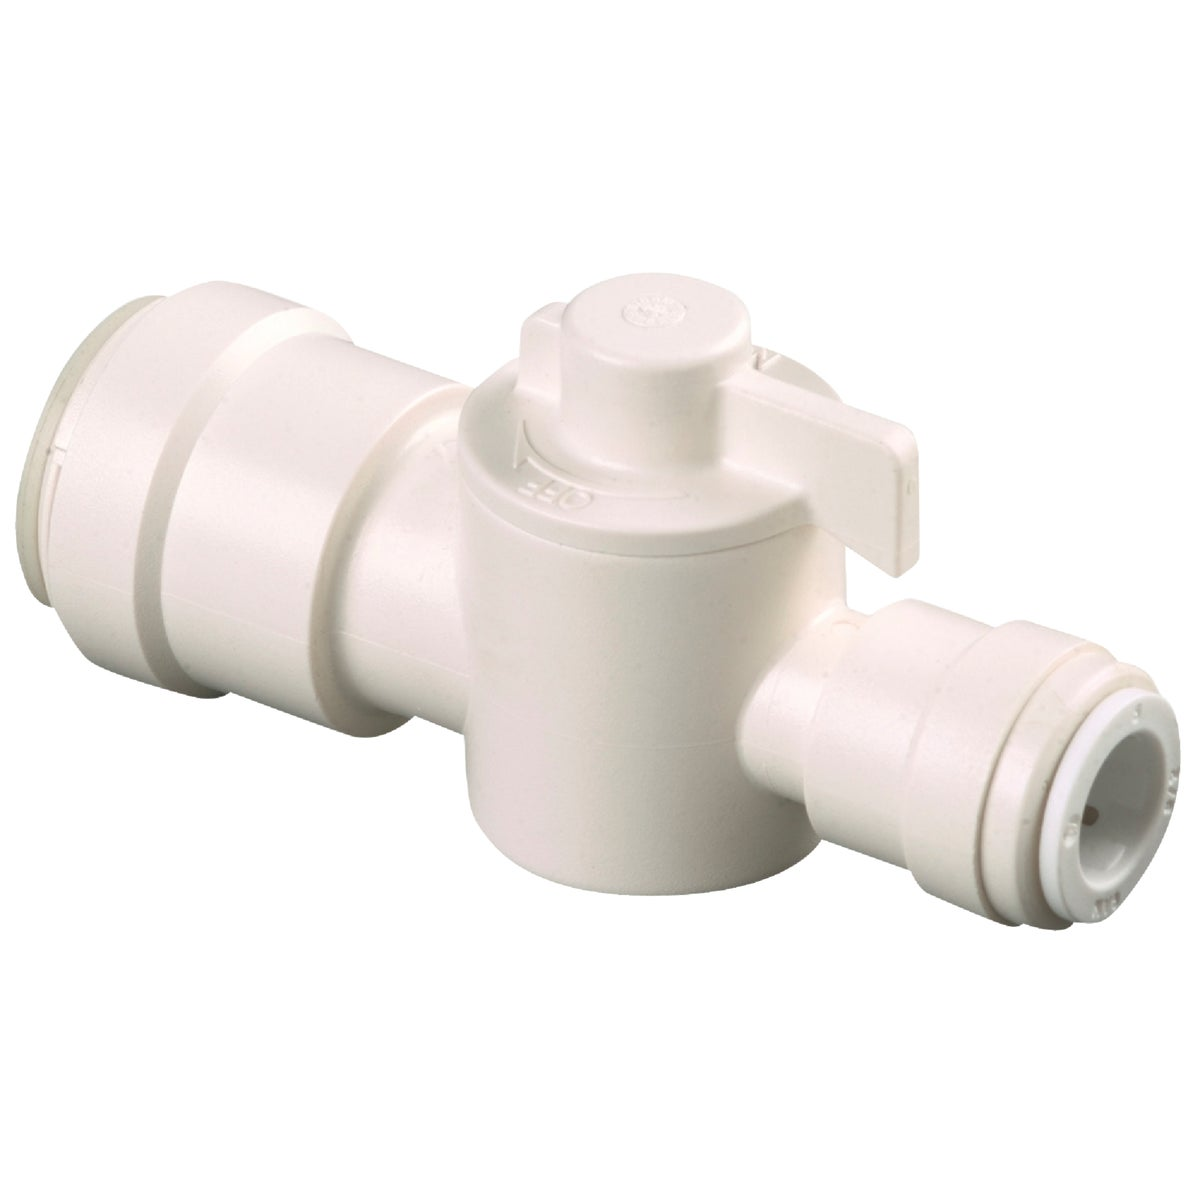 """1/2X1/4""""CTS STRGHT VALVE - P-671 by Watts Pex"""